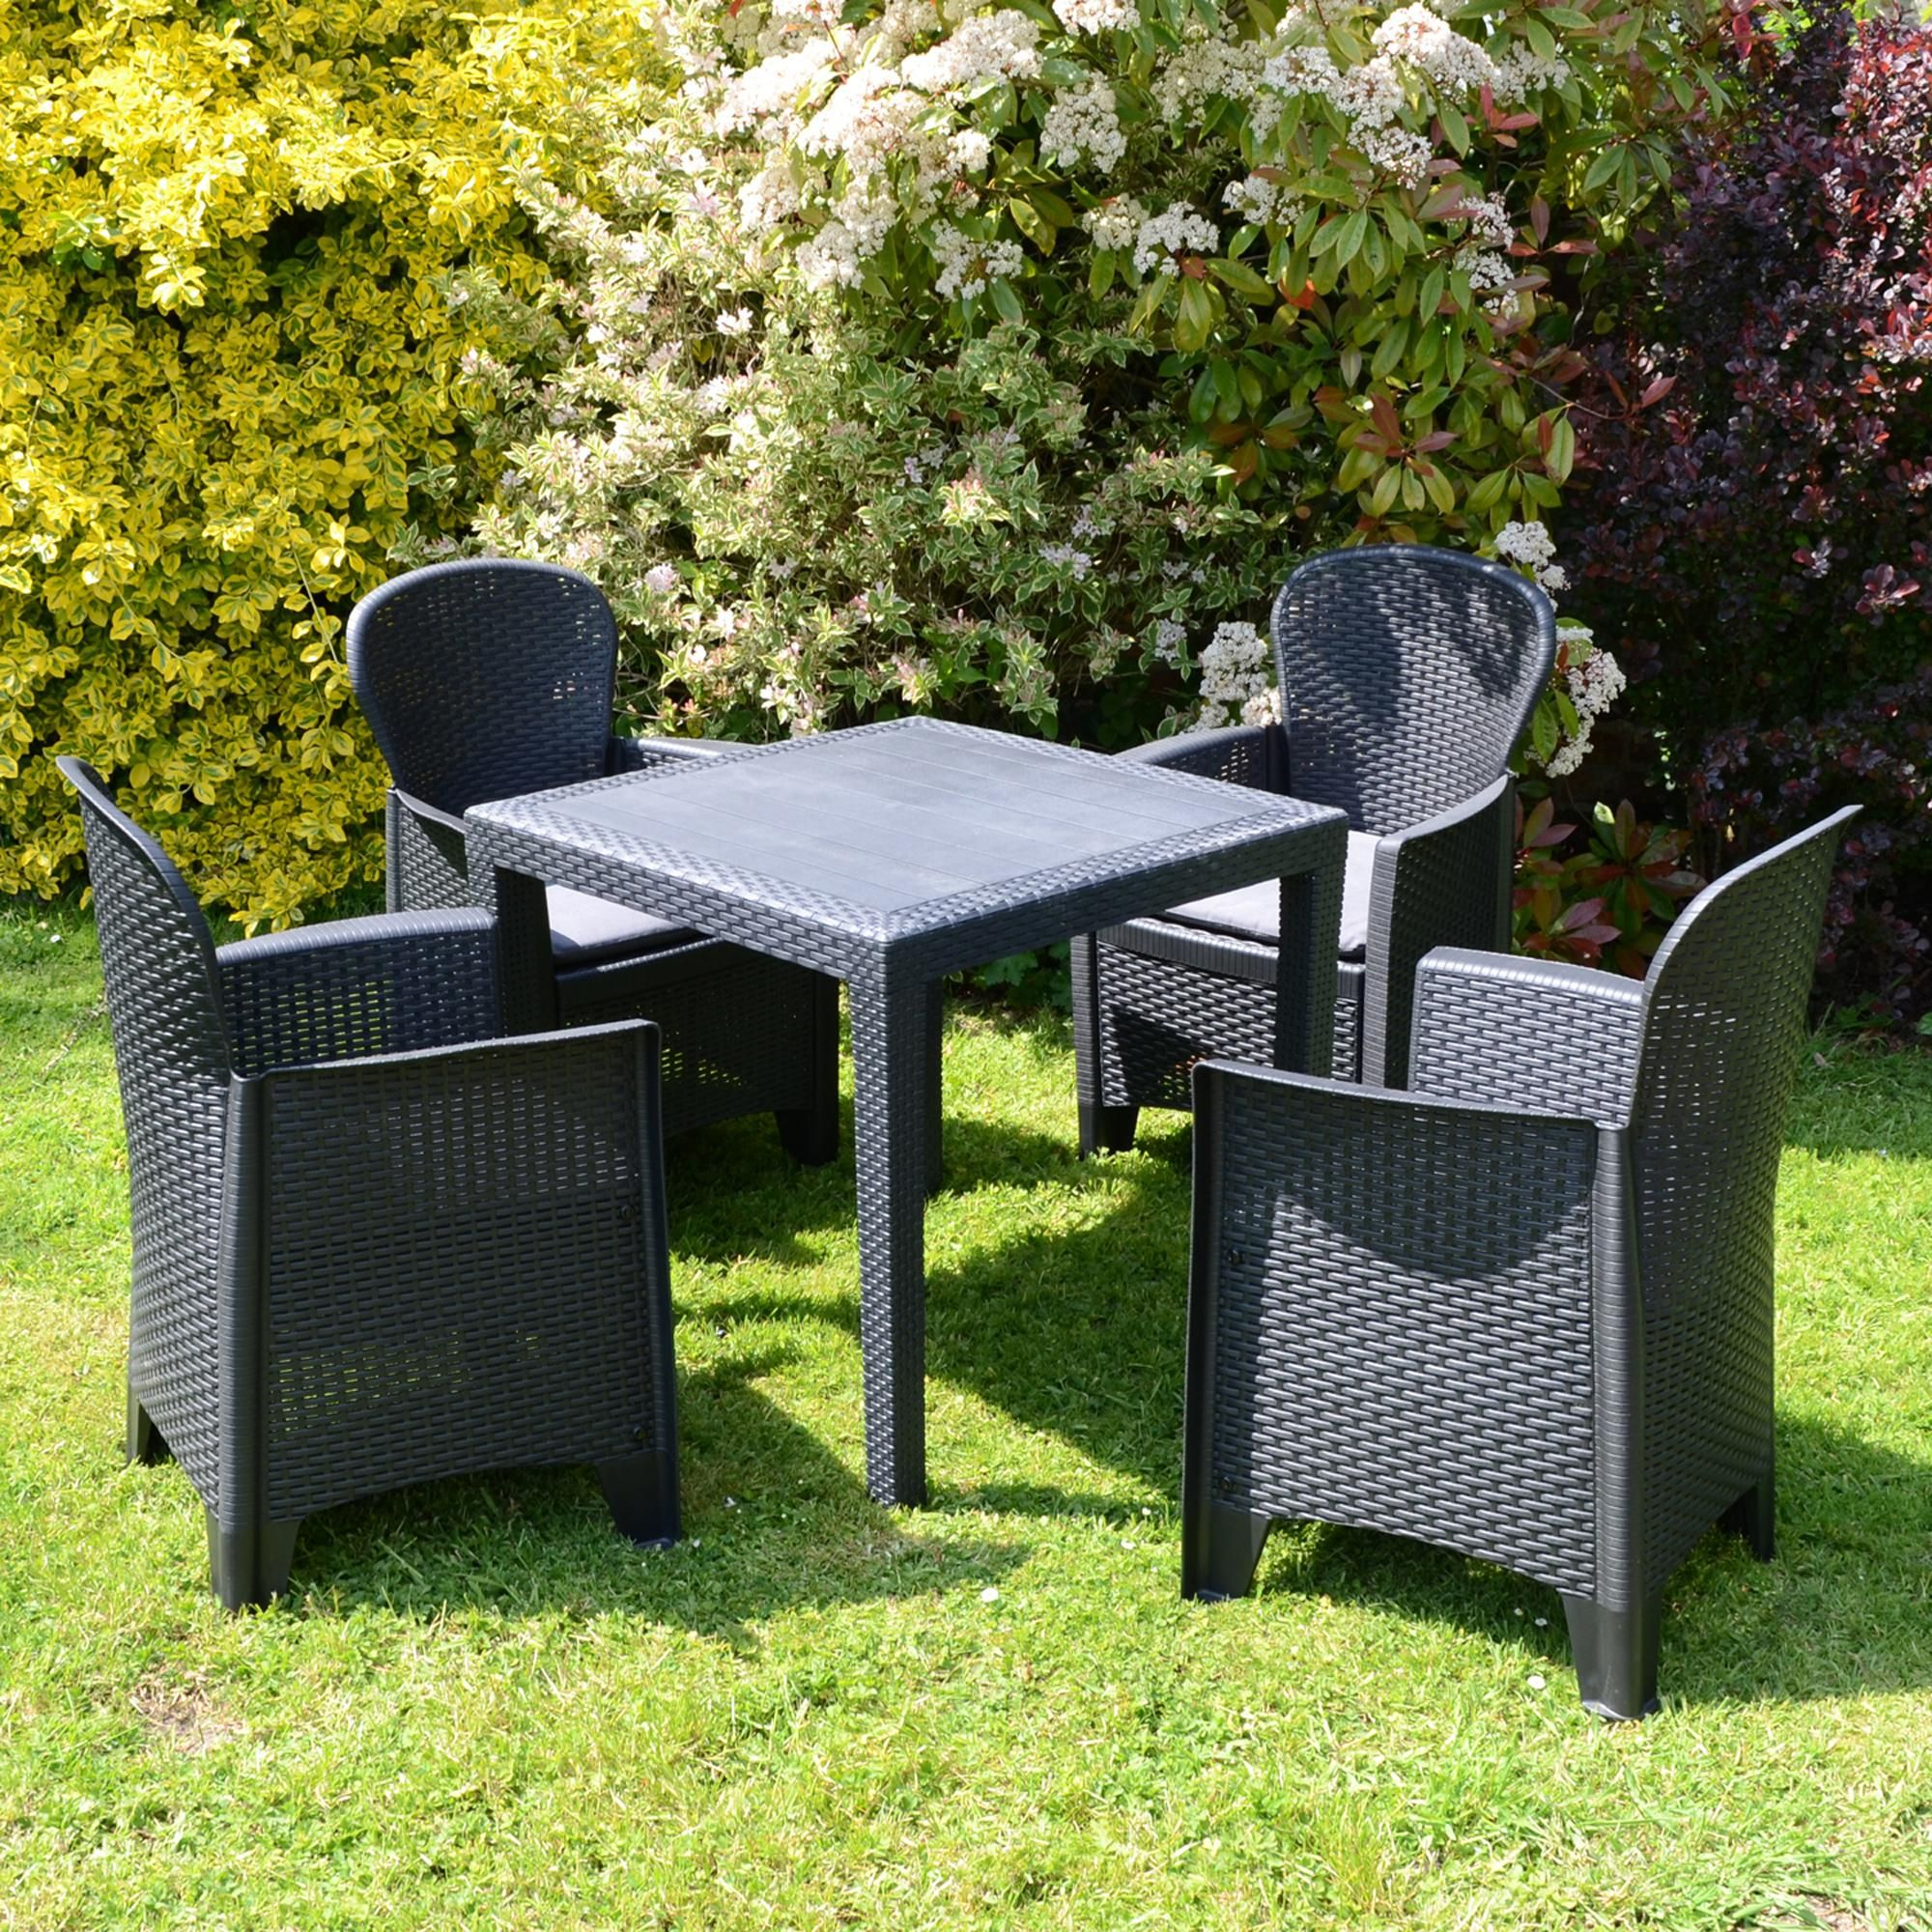 Salerno Table With 4 Sicily Chairs In 2020 Garden Furniture Sets Outdoor Furniture Sets Outdoor